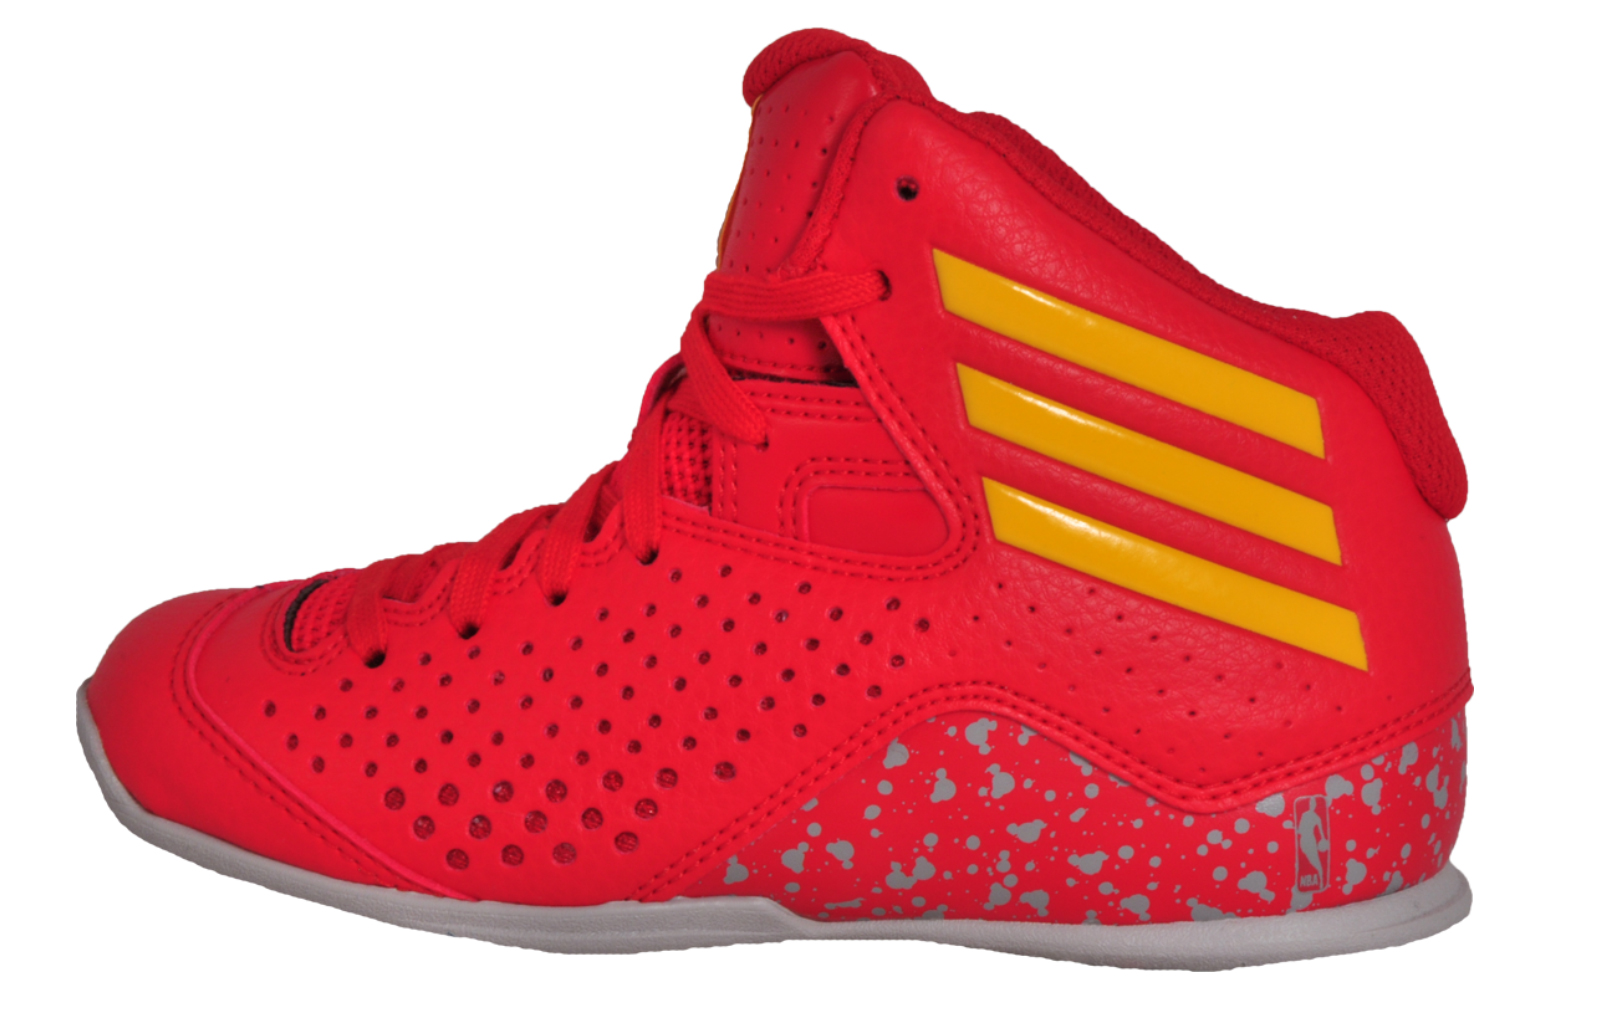 quality design 747dc f8a64 Adidas Next Level Speed 4 NBA Junior Kids Basketball Hi Top Trainers Red